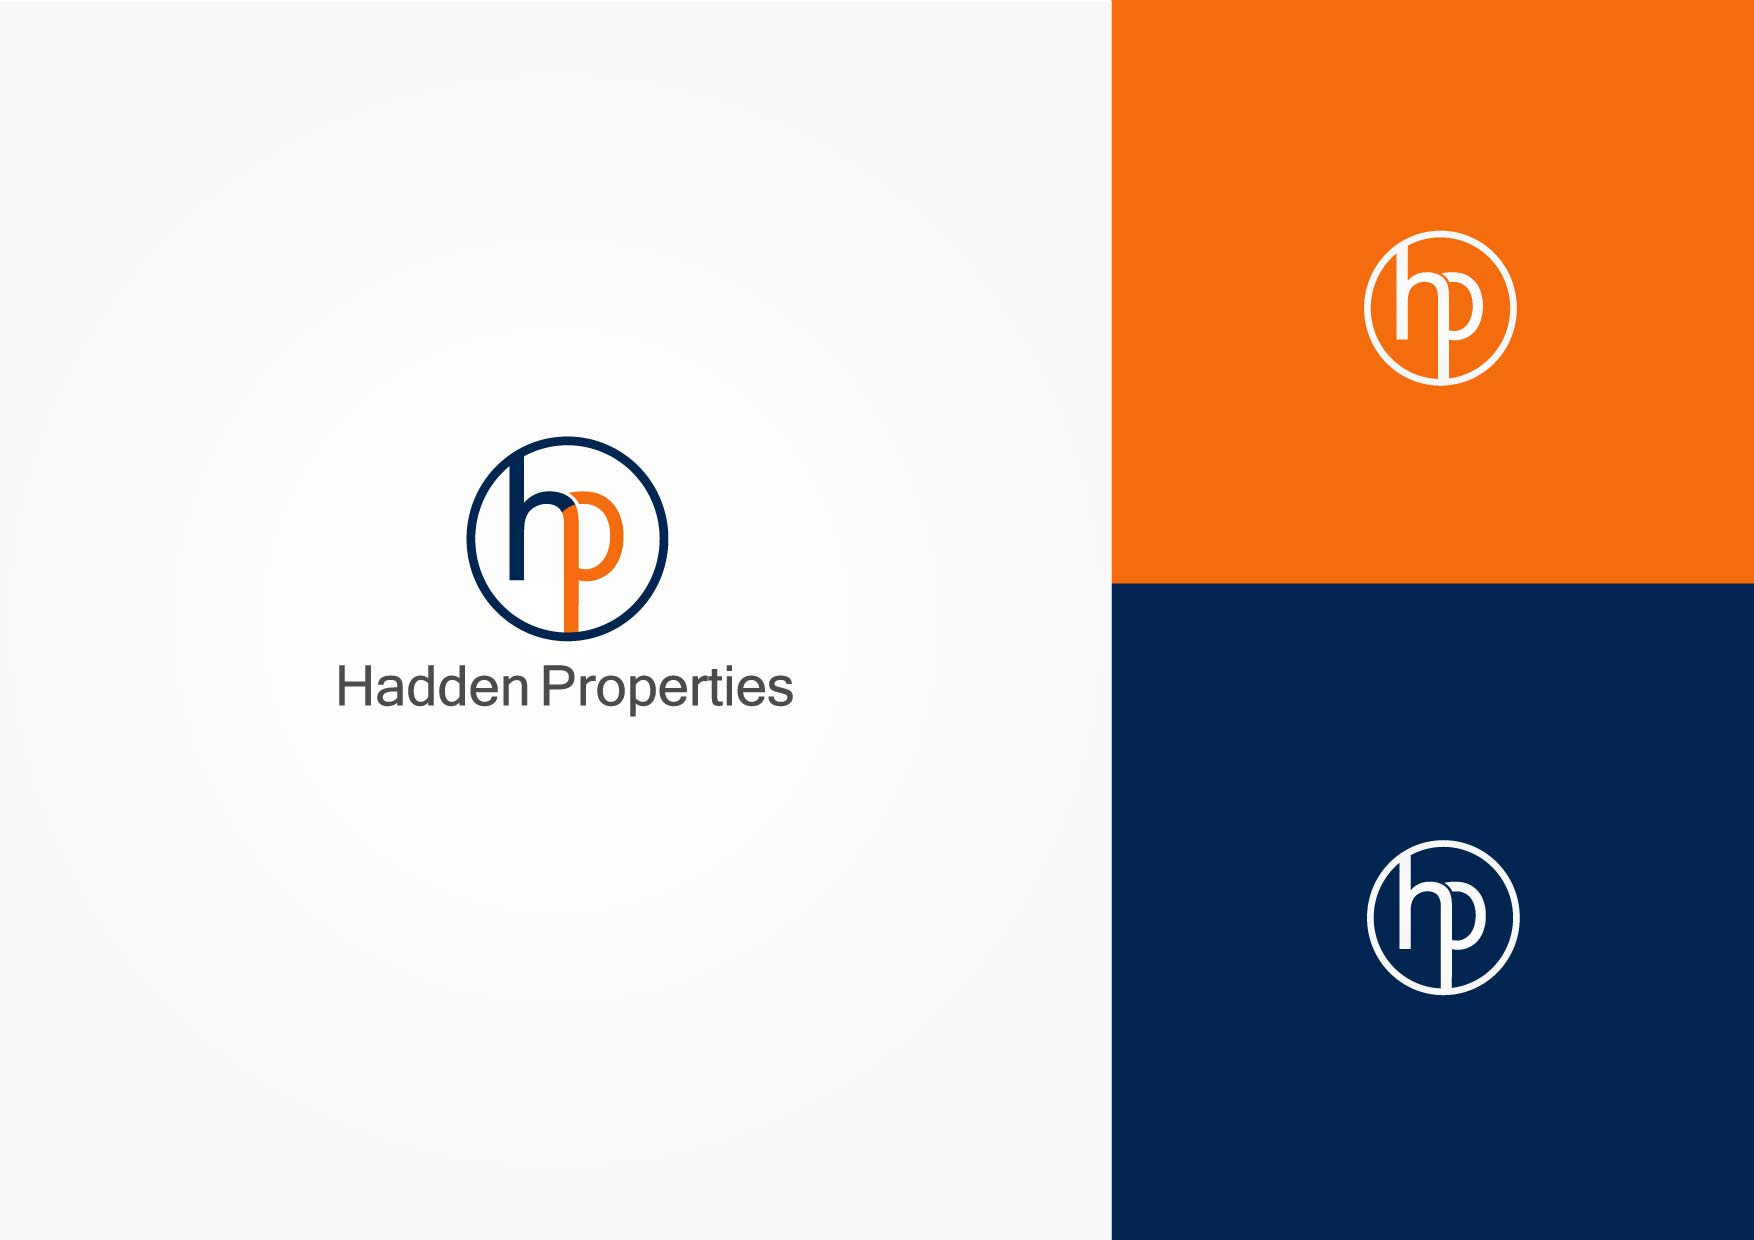 Logo Design by Osi Indra - Entry No. 114 in the Logo Design Contest Artistic Logo Design for Hadden Properties.